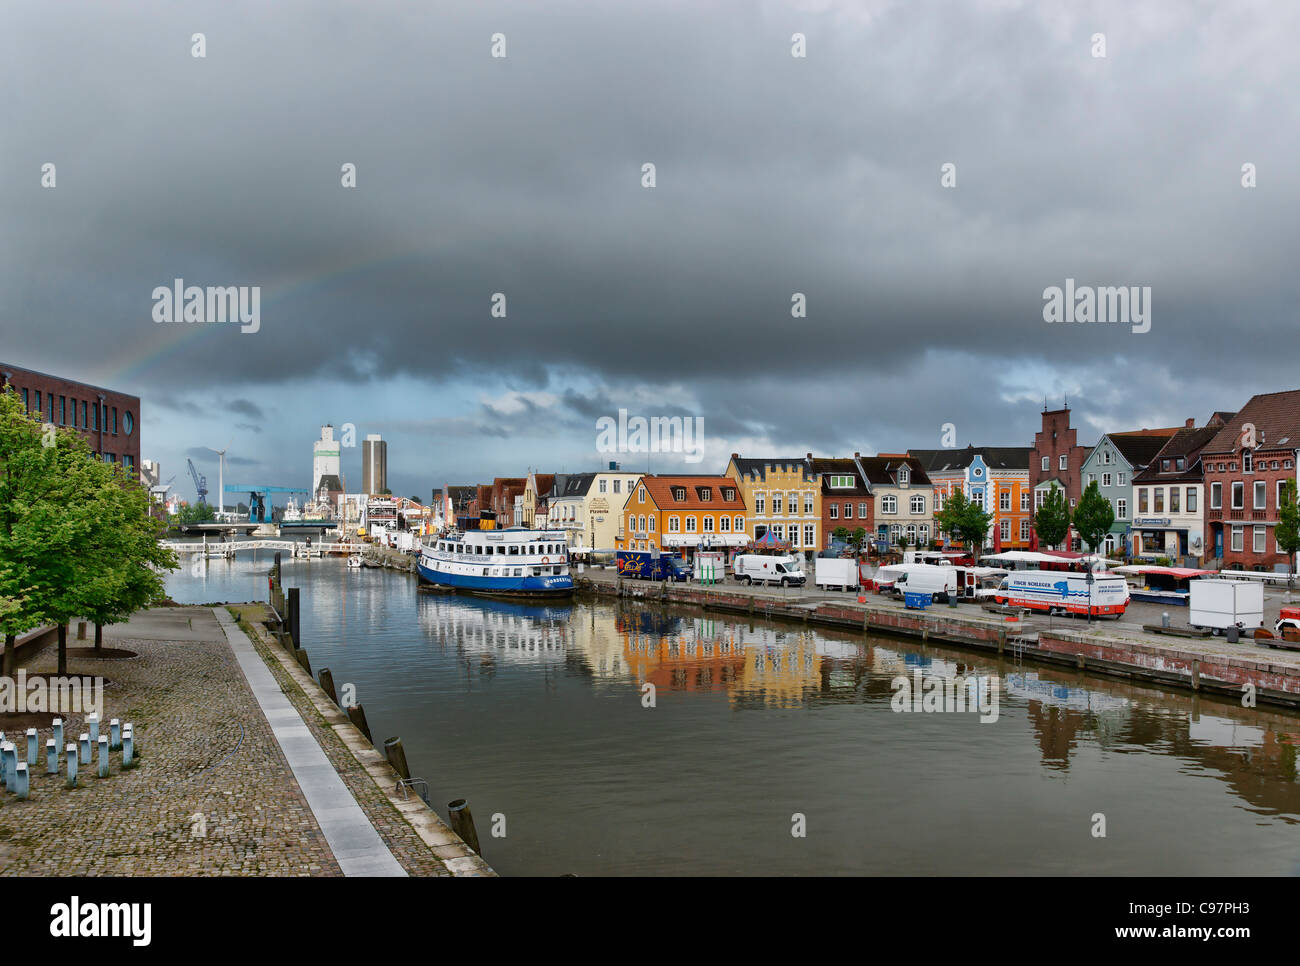 Inland harbour of Husum, Schleswig-Holstein, Germany - Stock Image